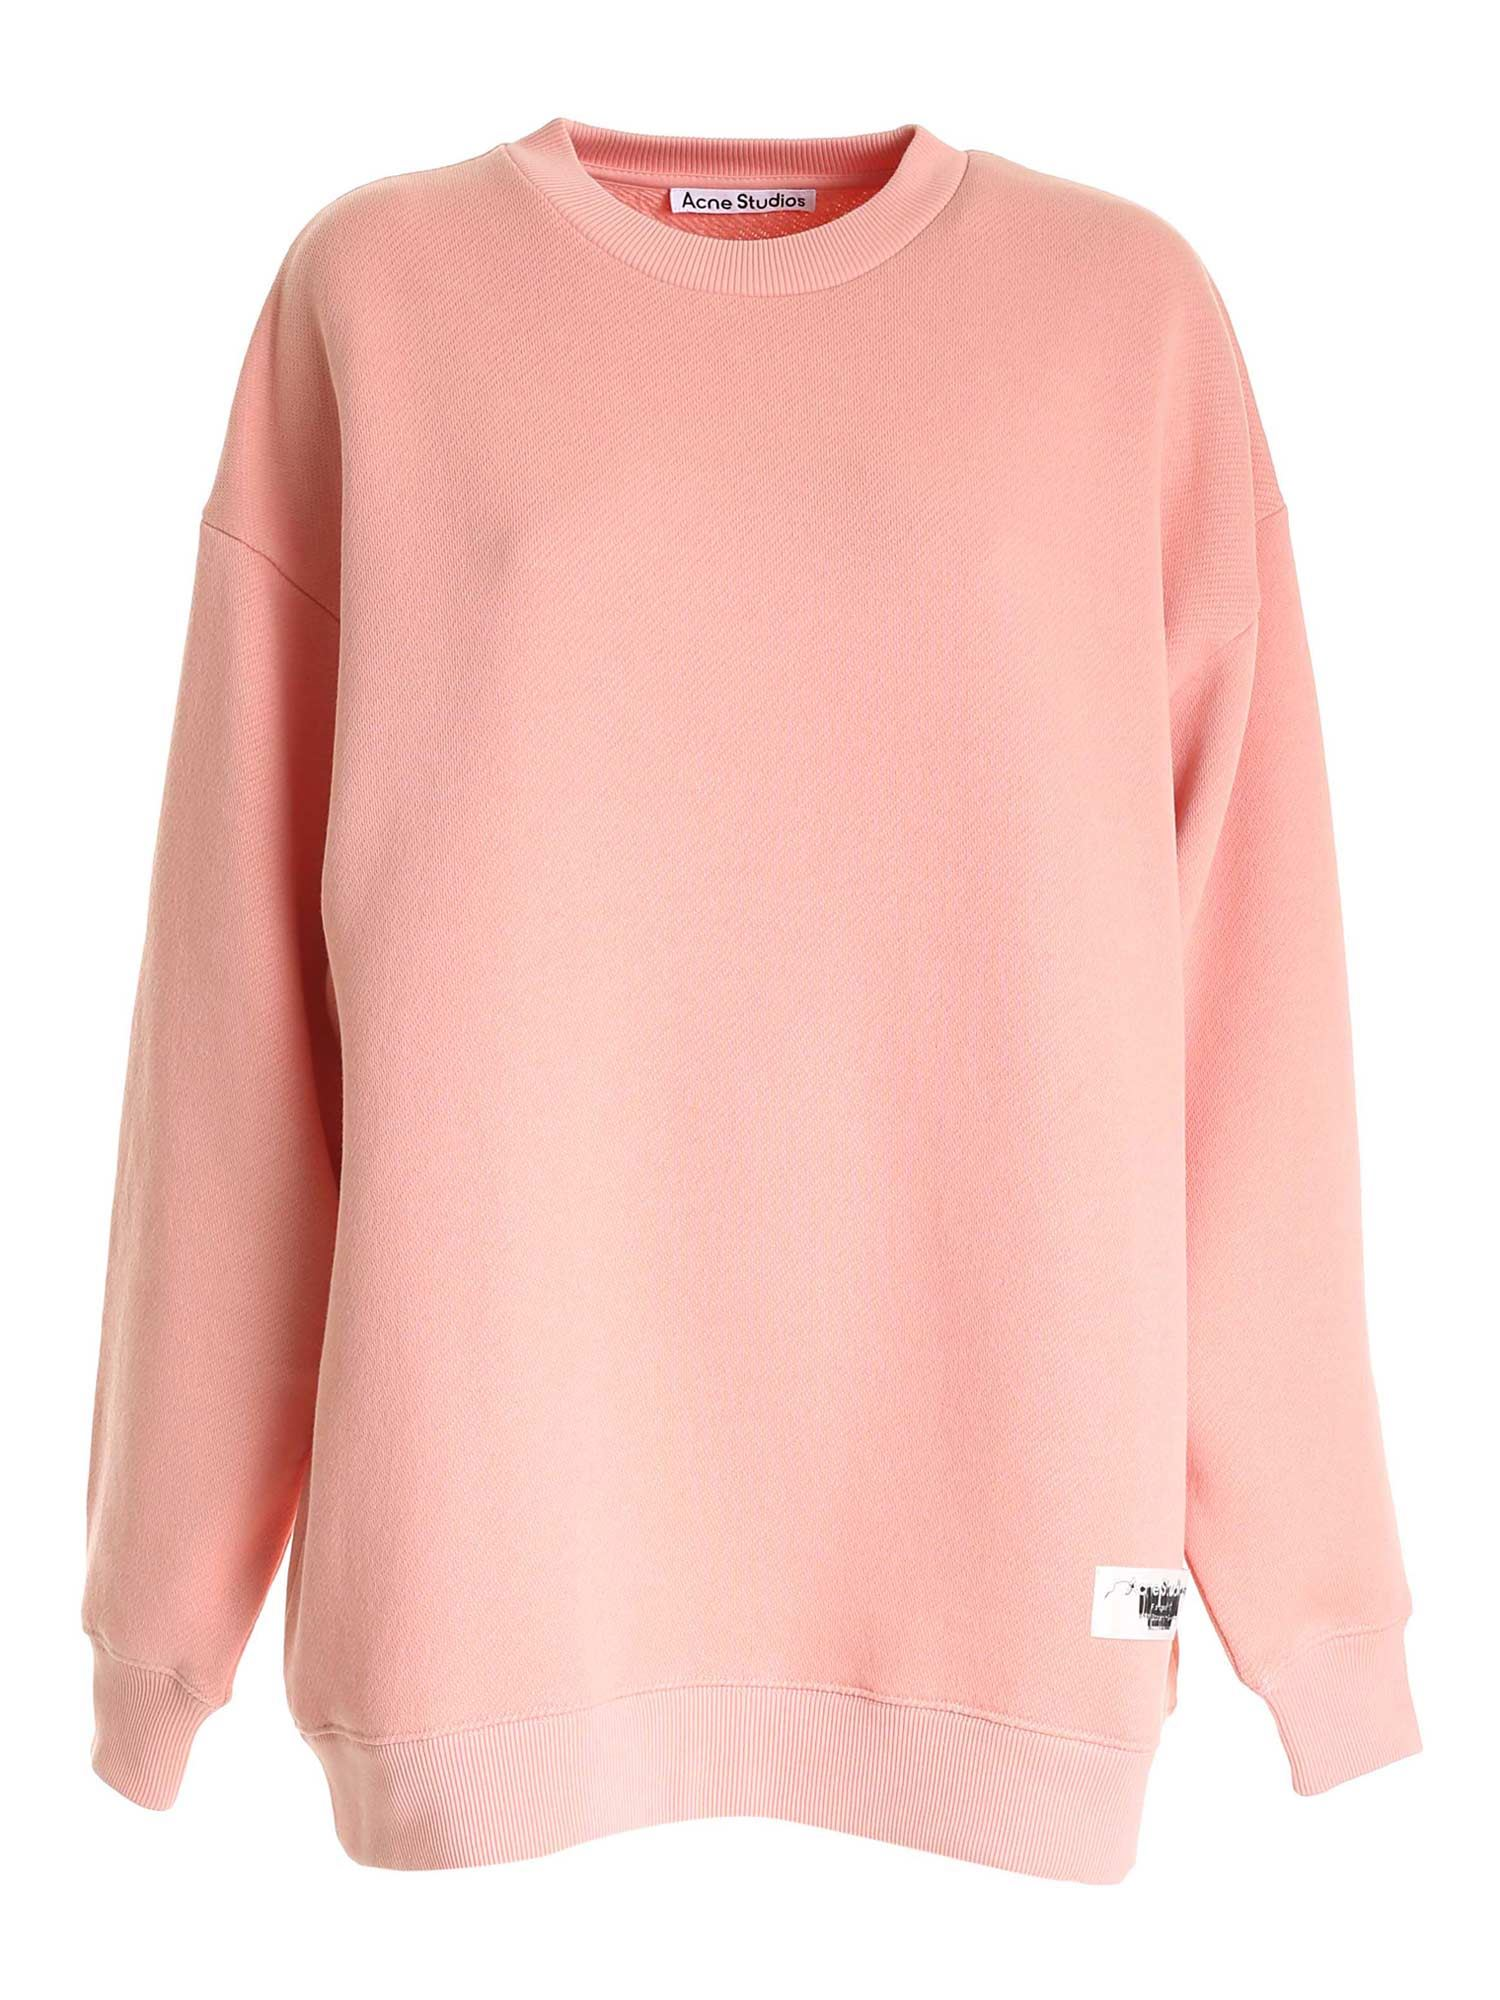 Acne Studios LOGO LABEL CREWNECK SWEATSHIRT IN PINK